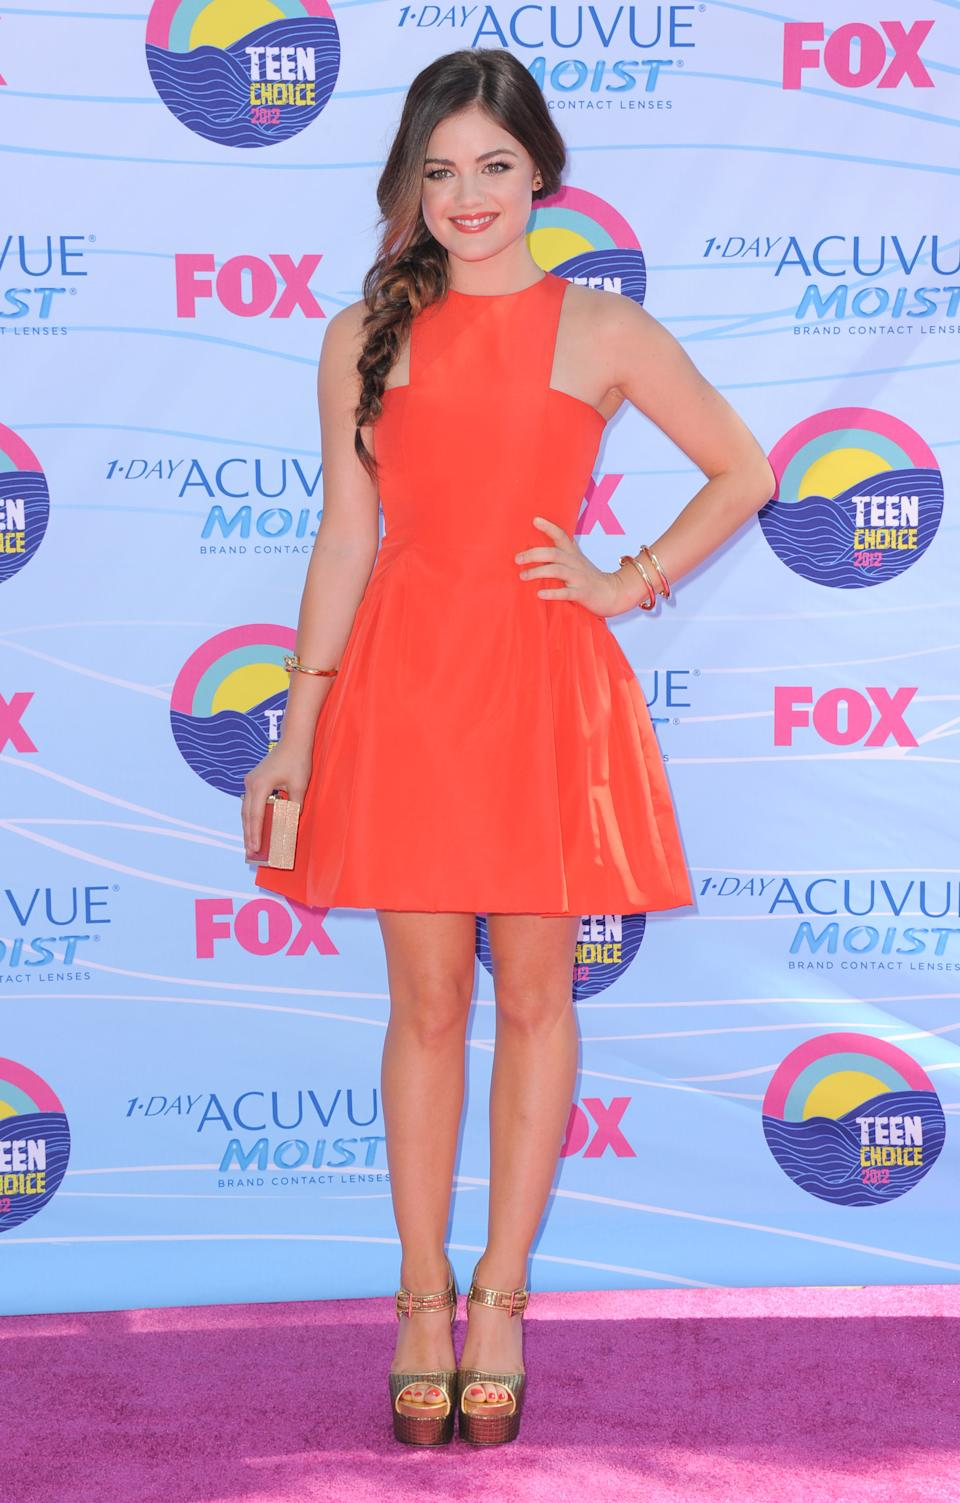 Lucy Hale arrives at the Teen Choice Awards on Sunday, July 22, 2012, in Universal City, Calif. (Photo by Jordan Strauss/Invision/AP)